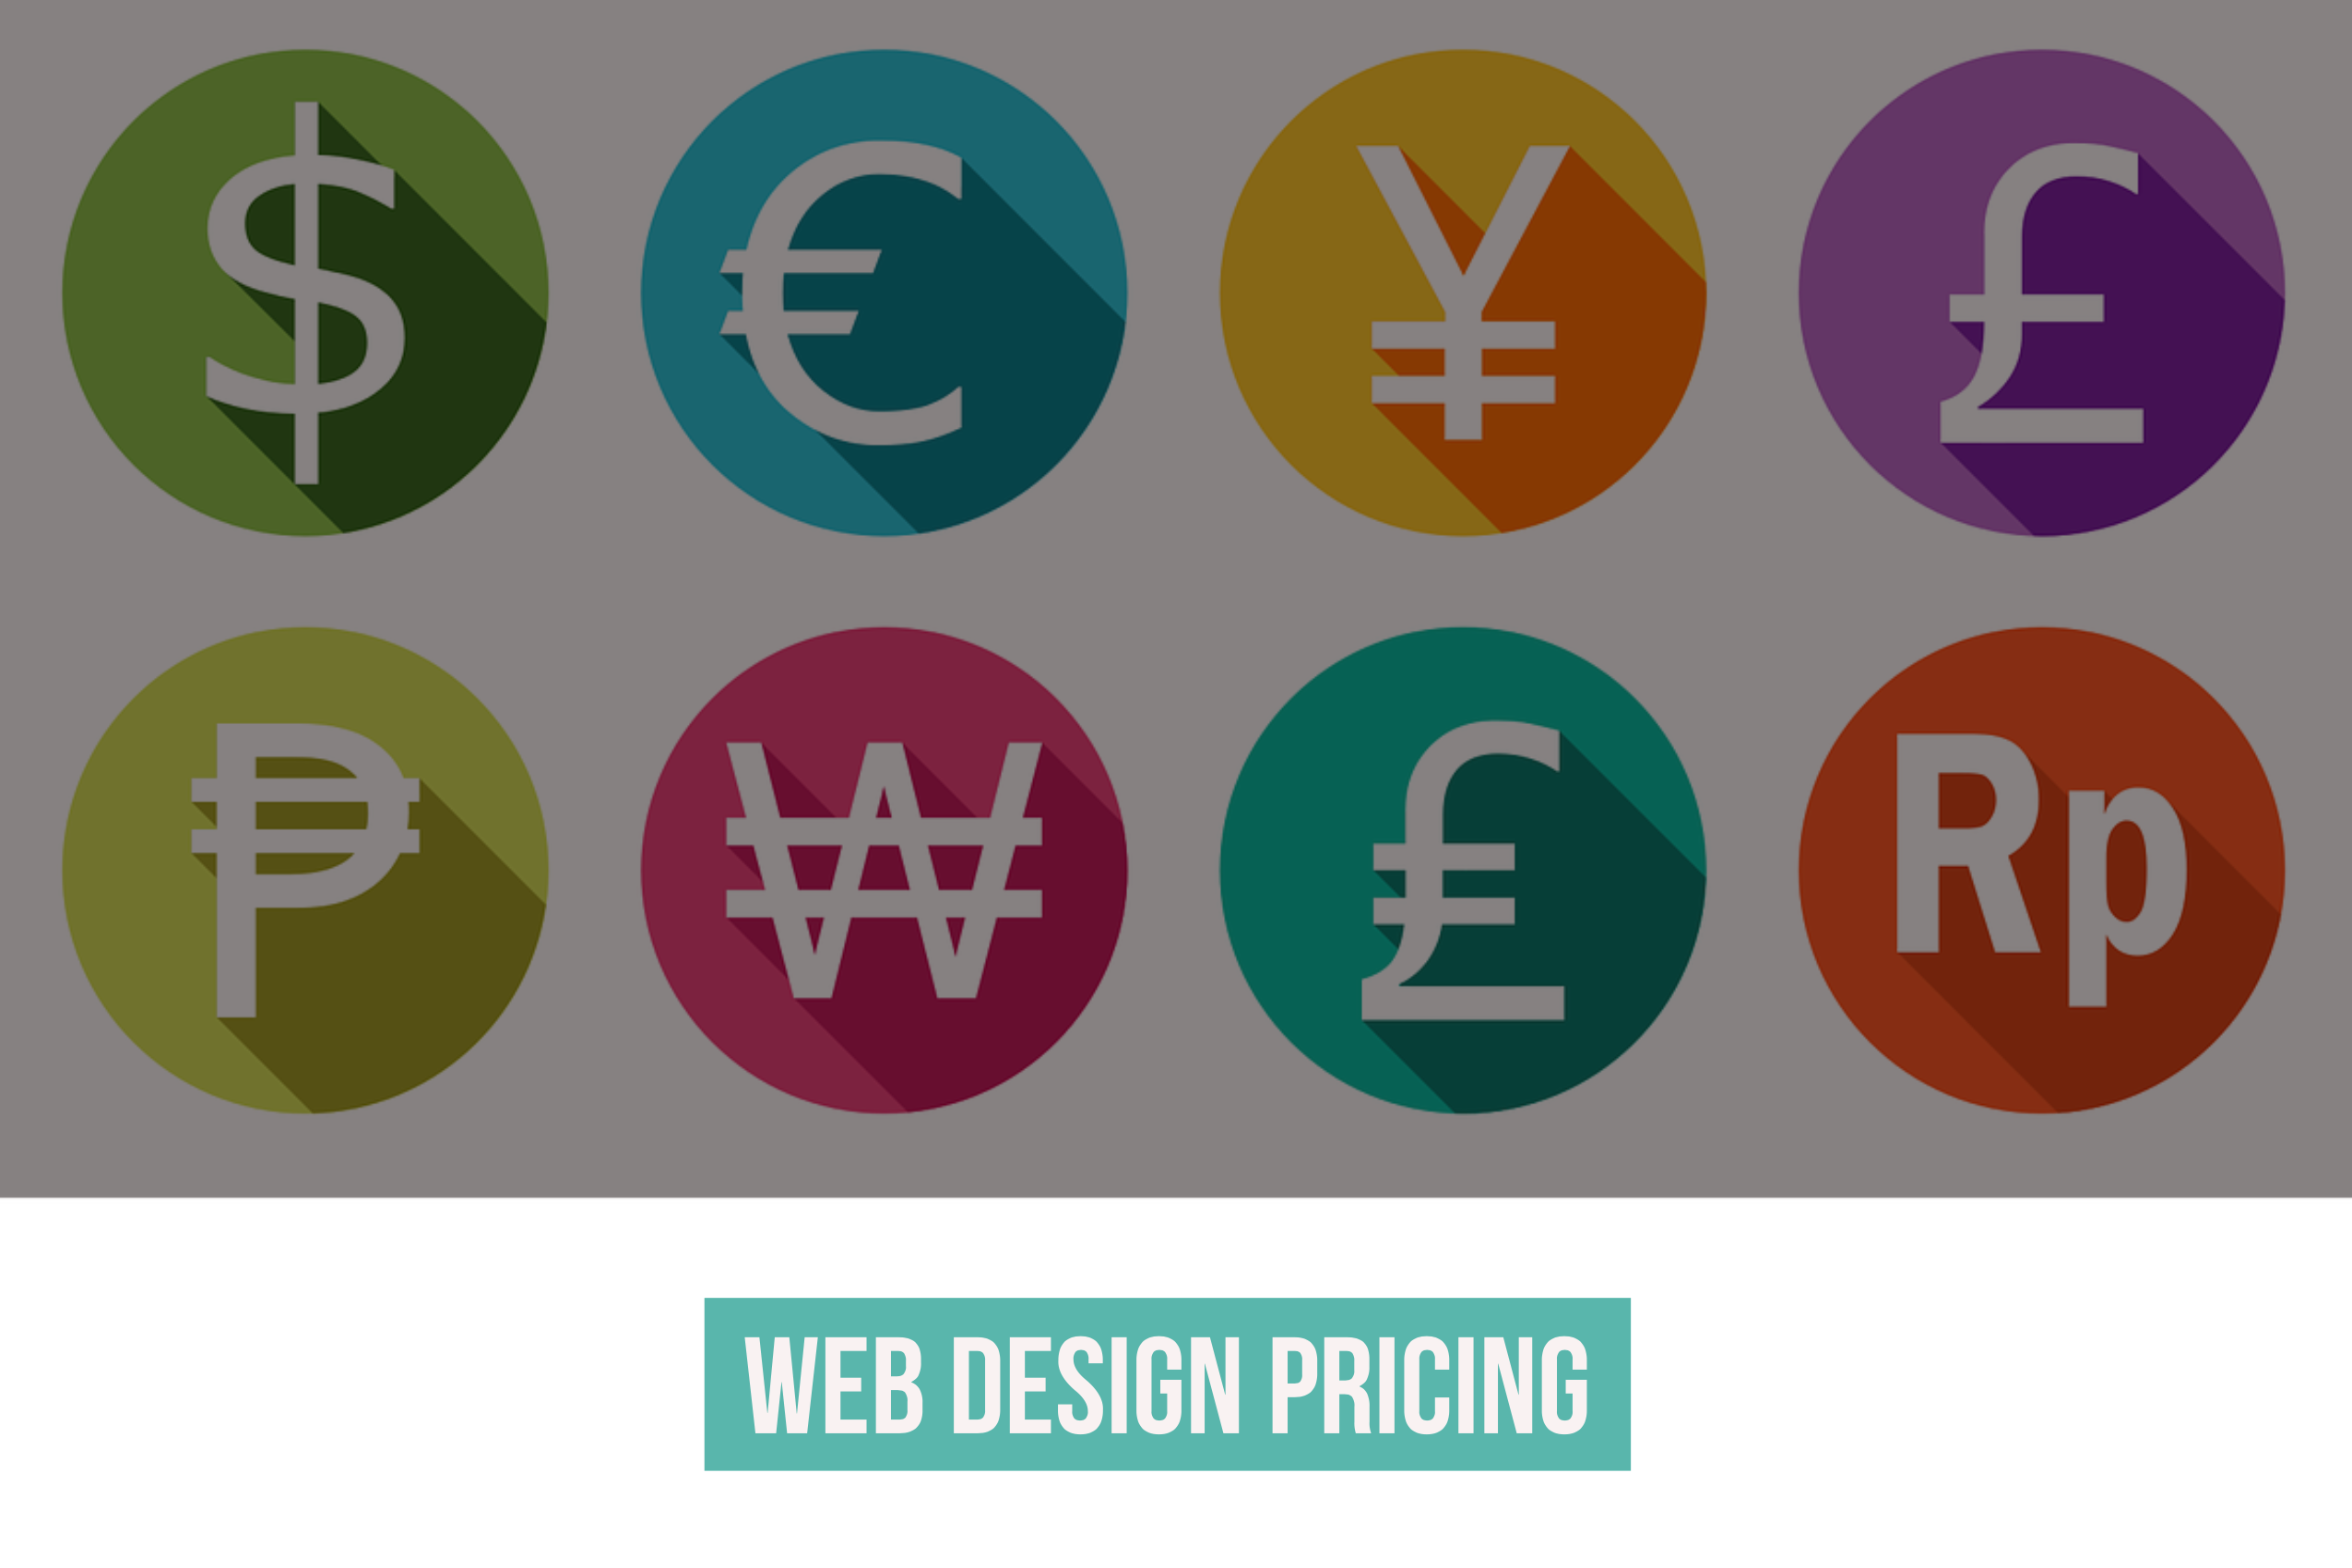 Naggra web design pricing